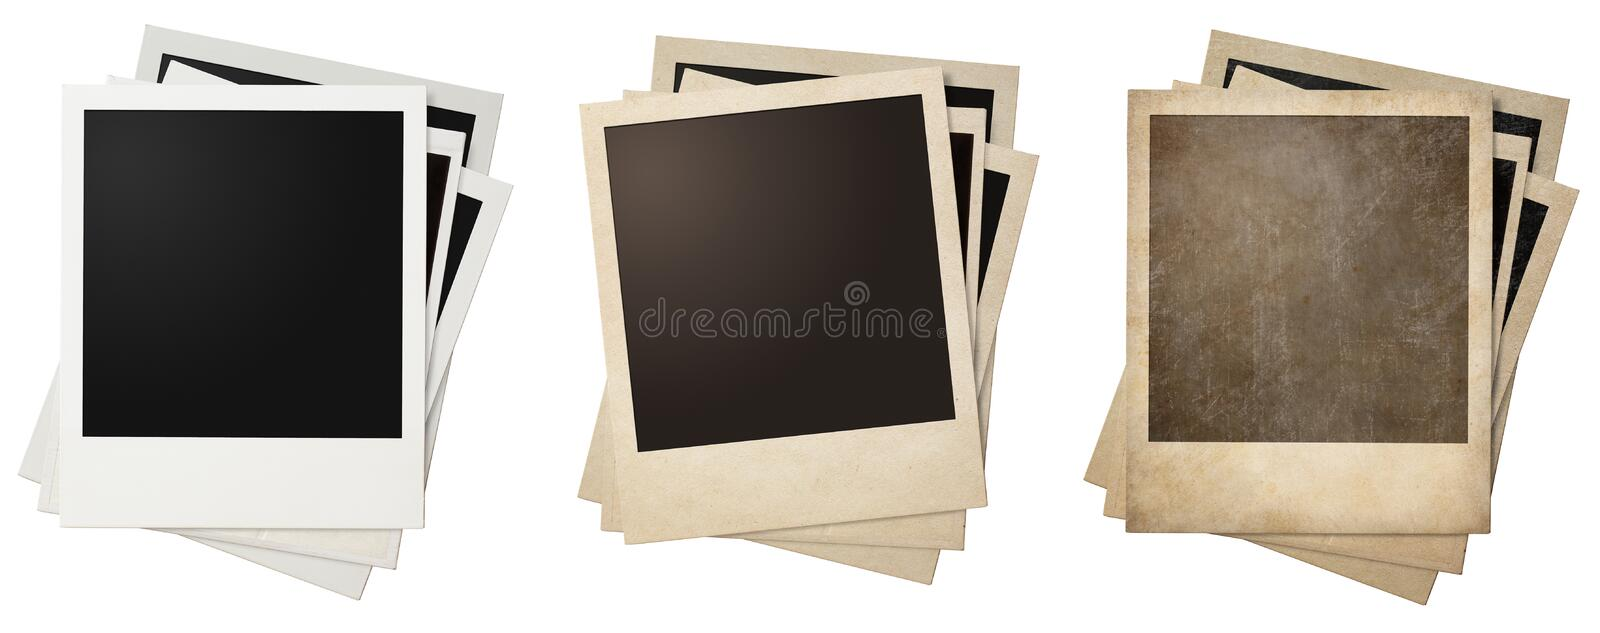 Old and new polaroid photo frames stacks isolated royalty free stock photography